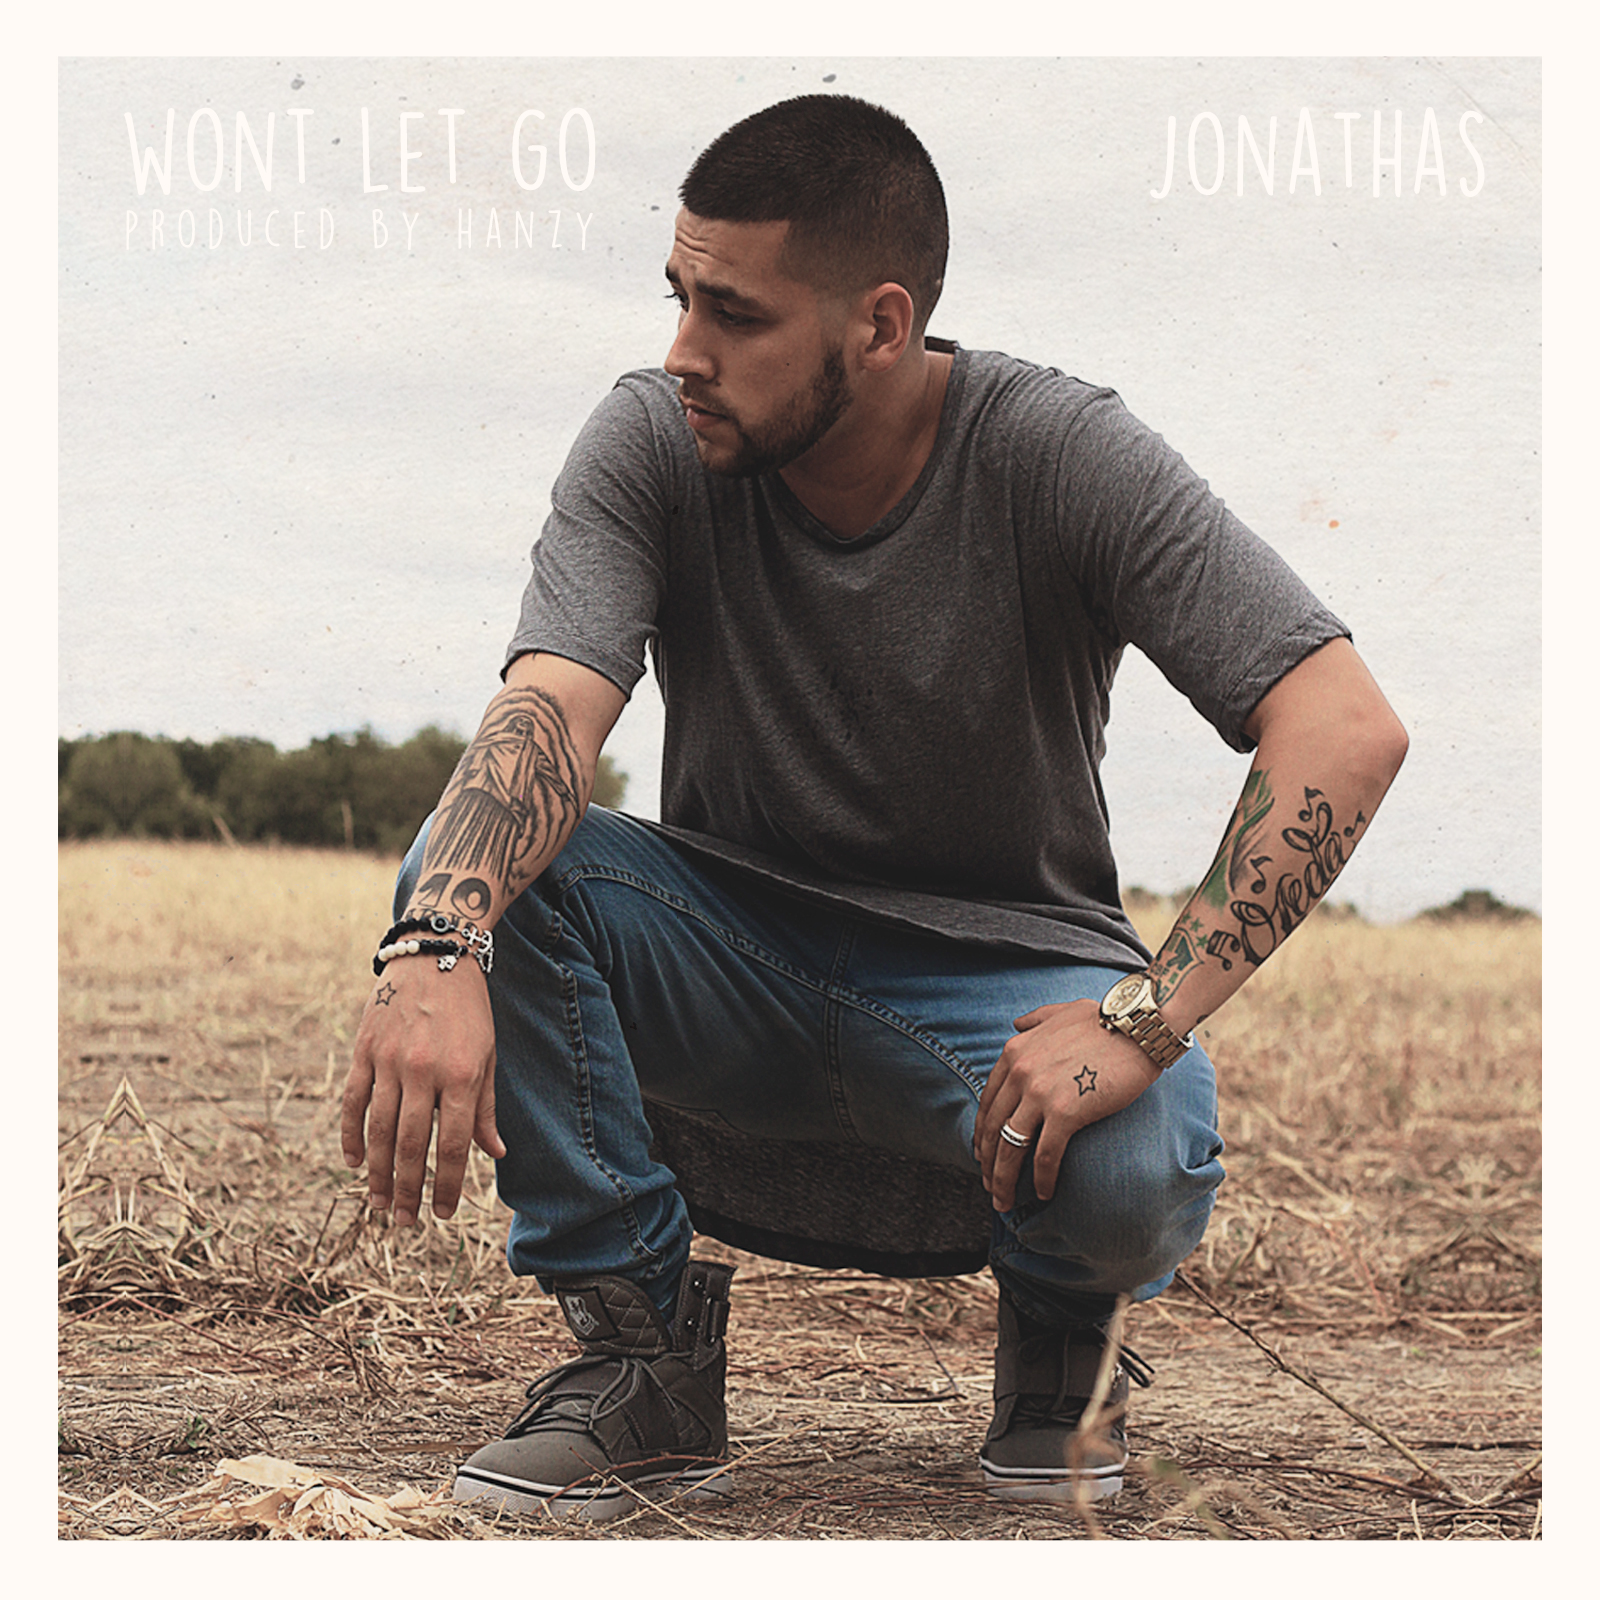 Jonathas - 'Won't Let Go' Prod. by Hanzy